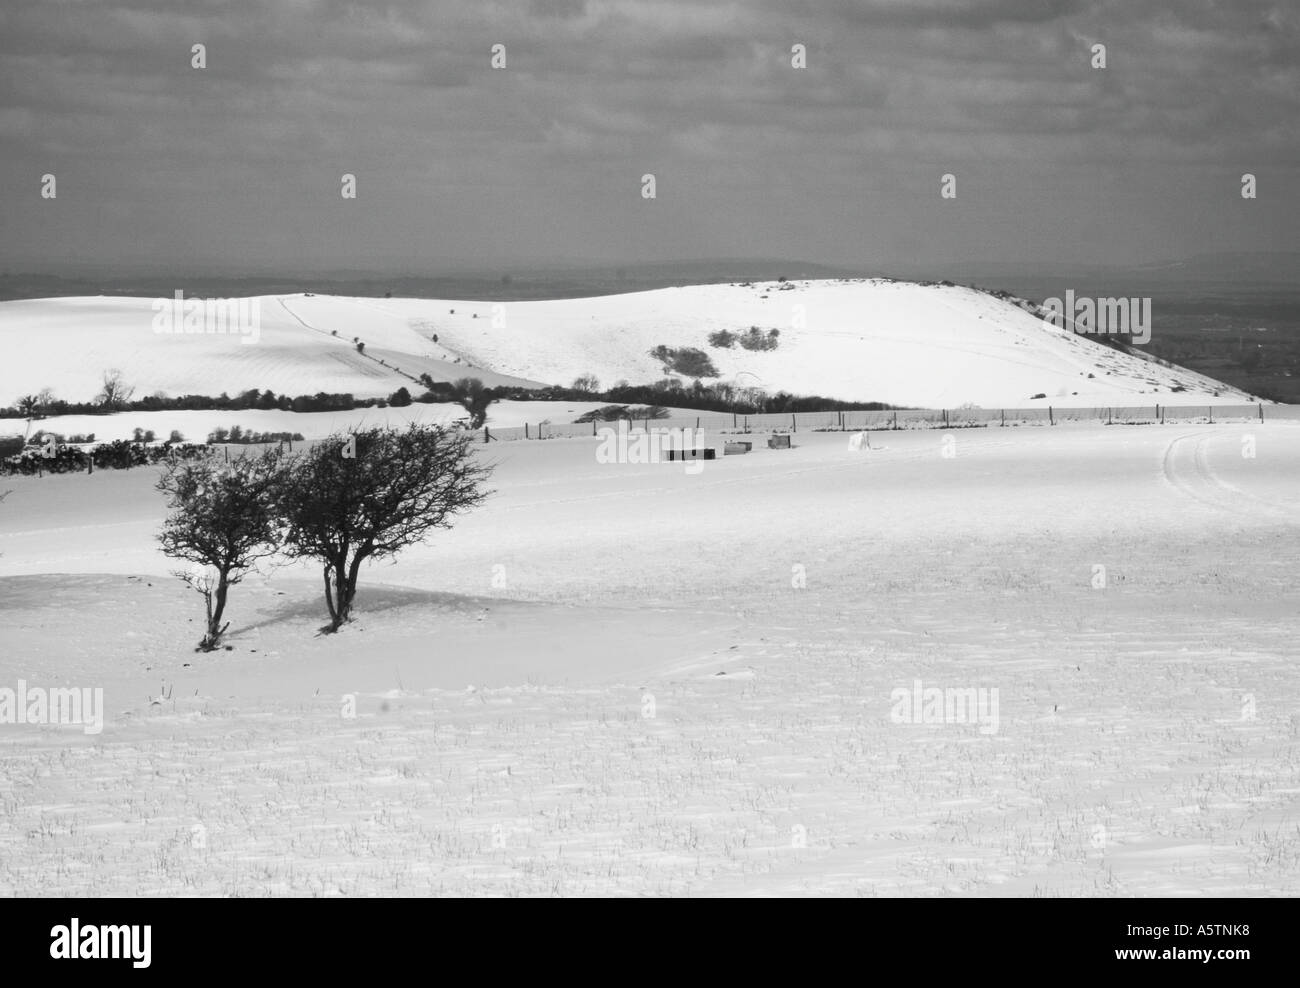 Snowy landscape on the South downs Sussex, England. - Stock Image